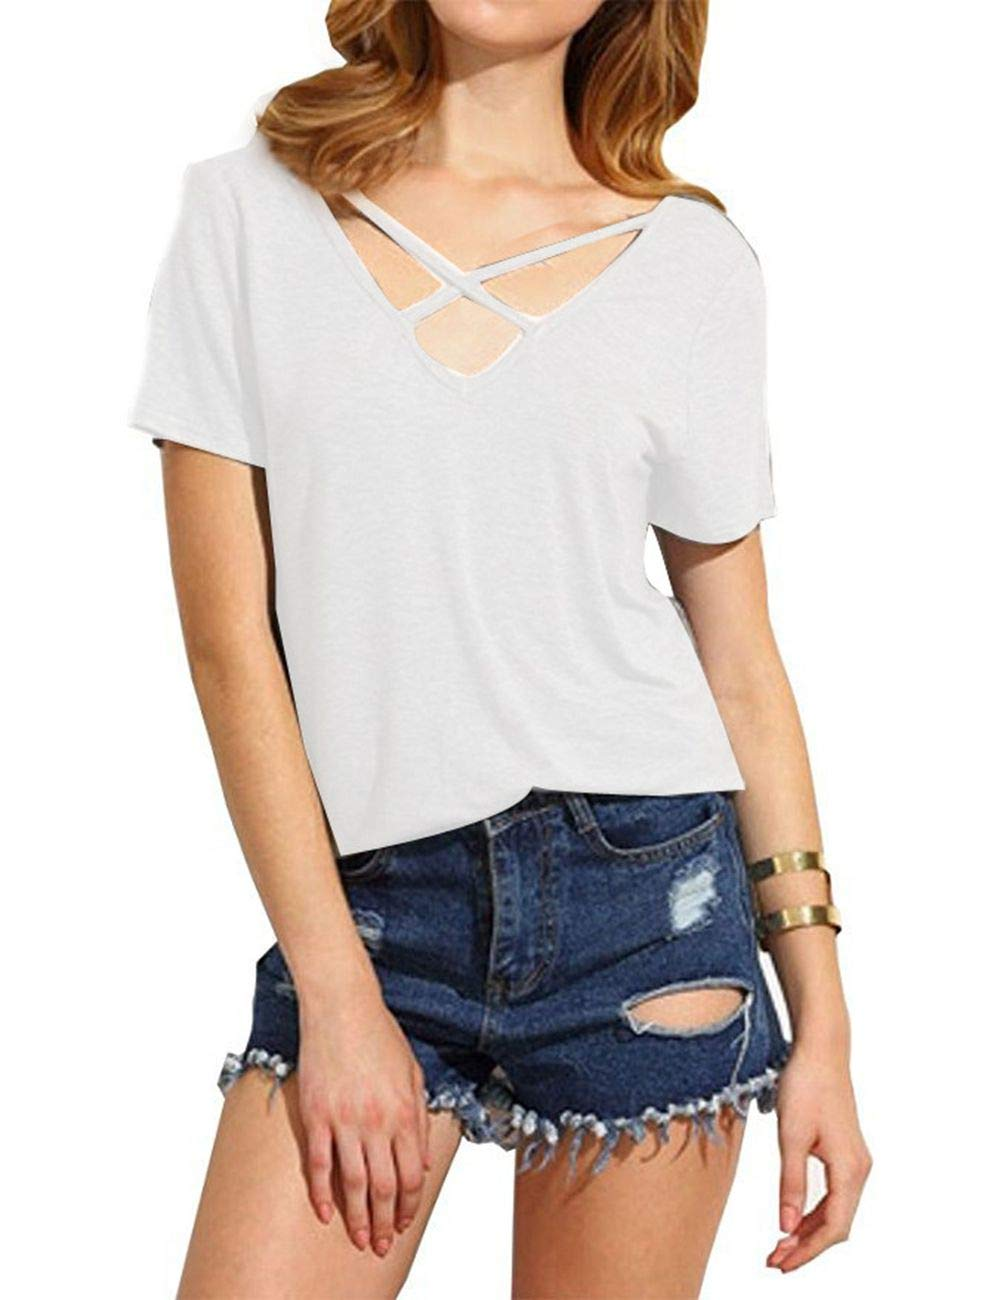 Women T-Shirt Short Sleeve Criss Cross Solid Color Tunic Tops Pullover Blouse (XXXL, White)